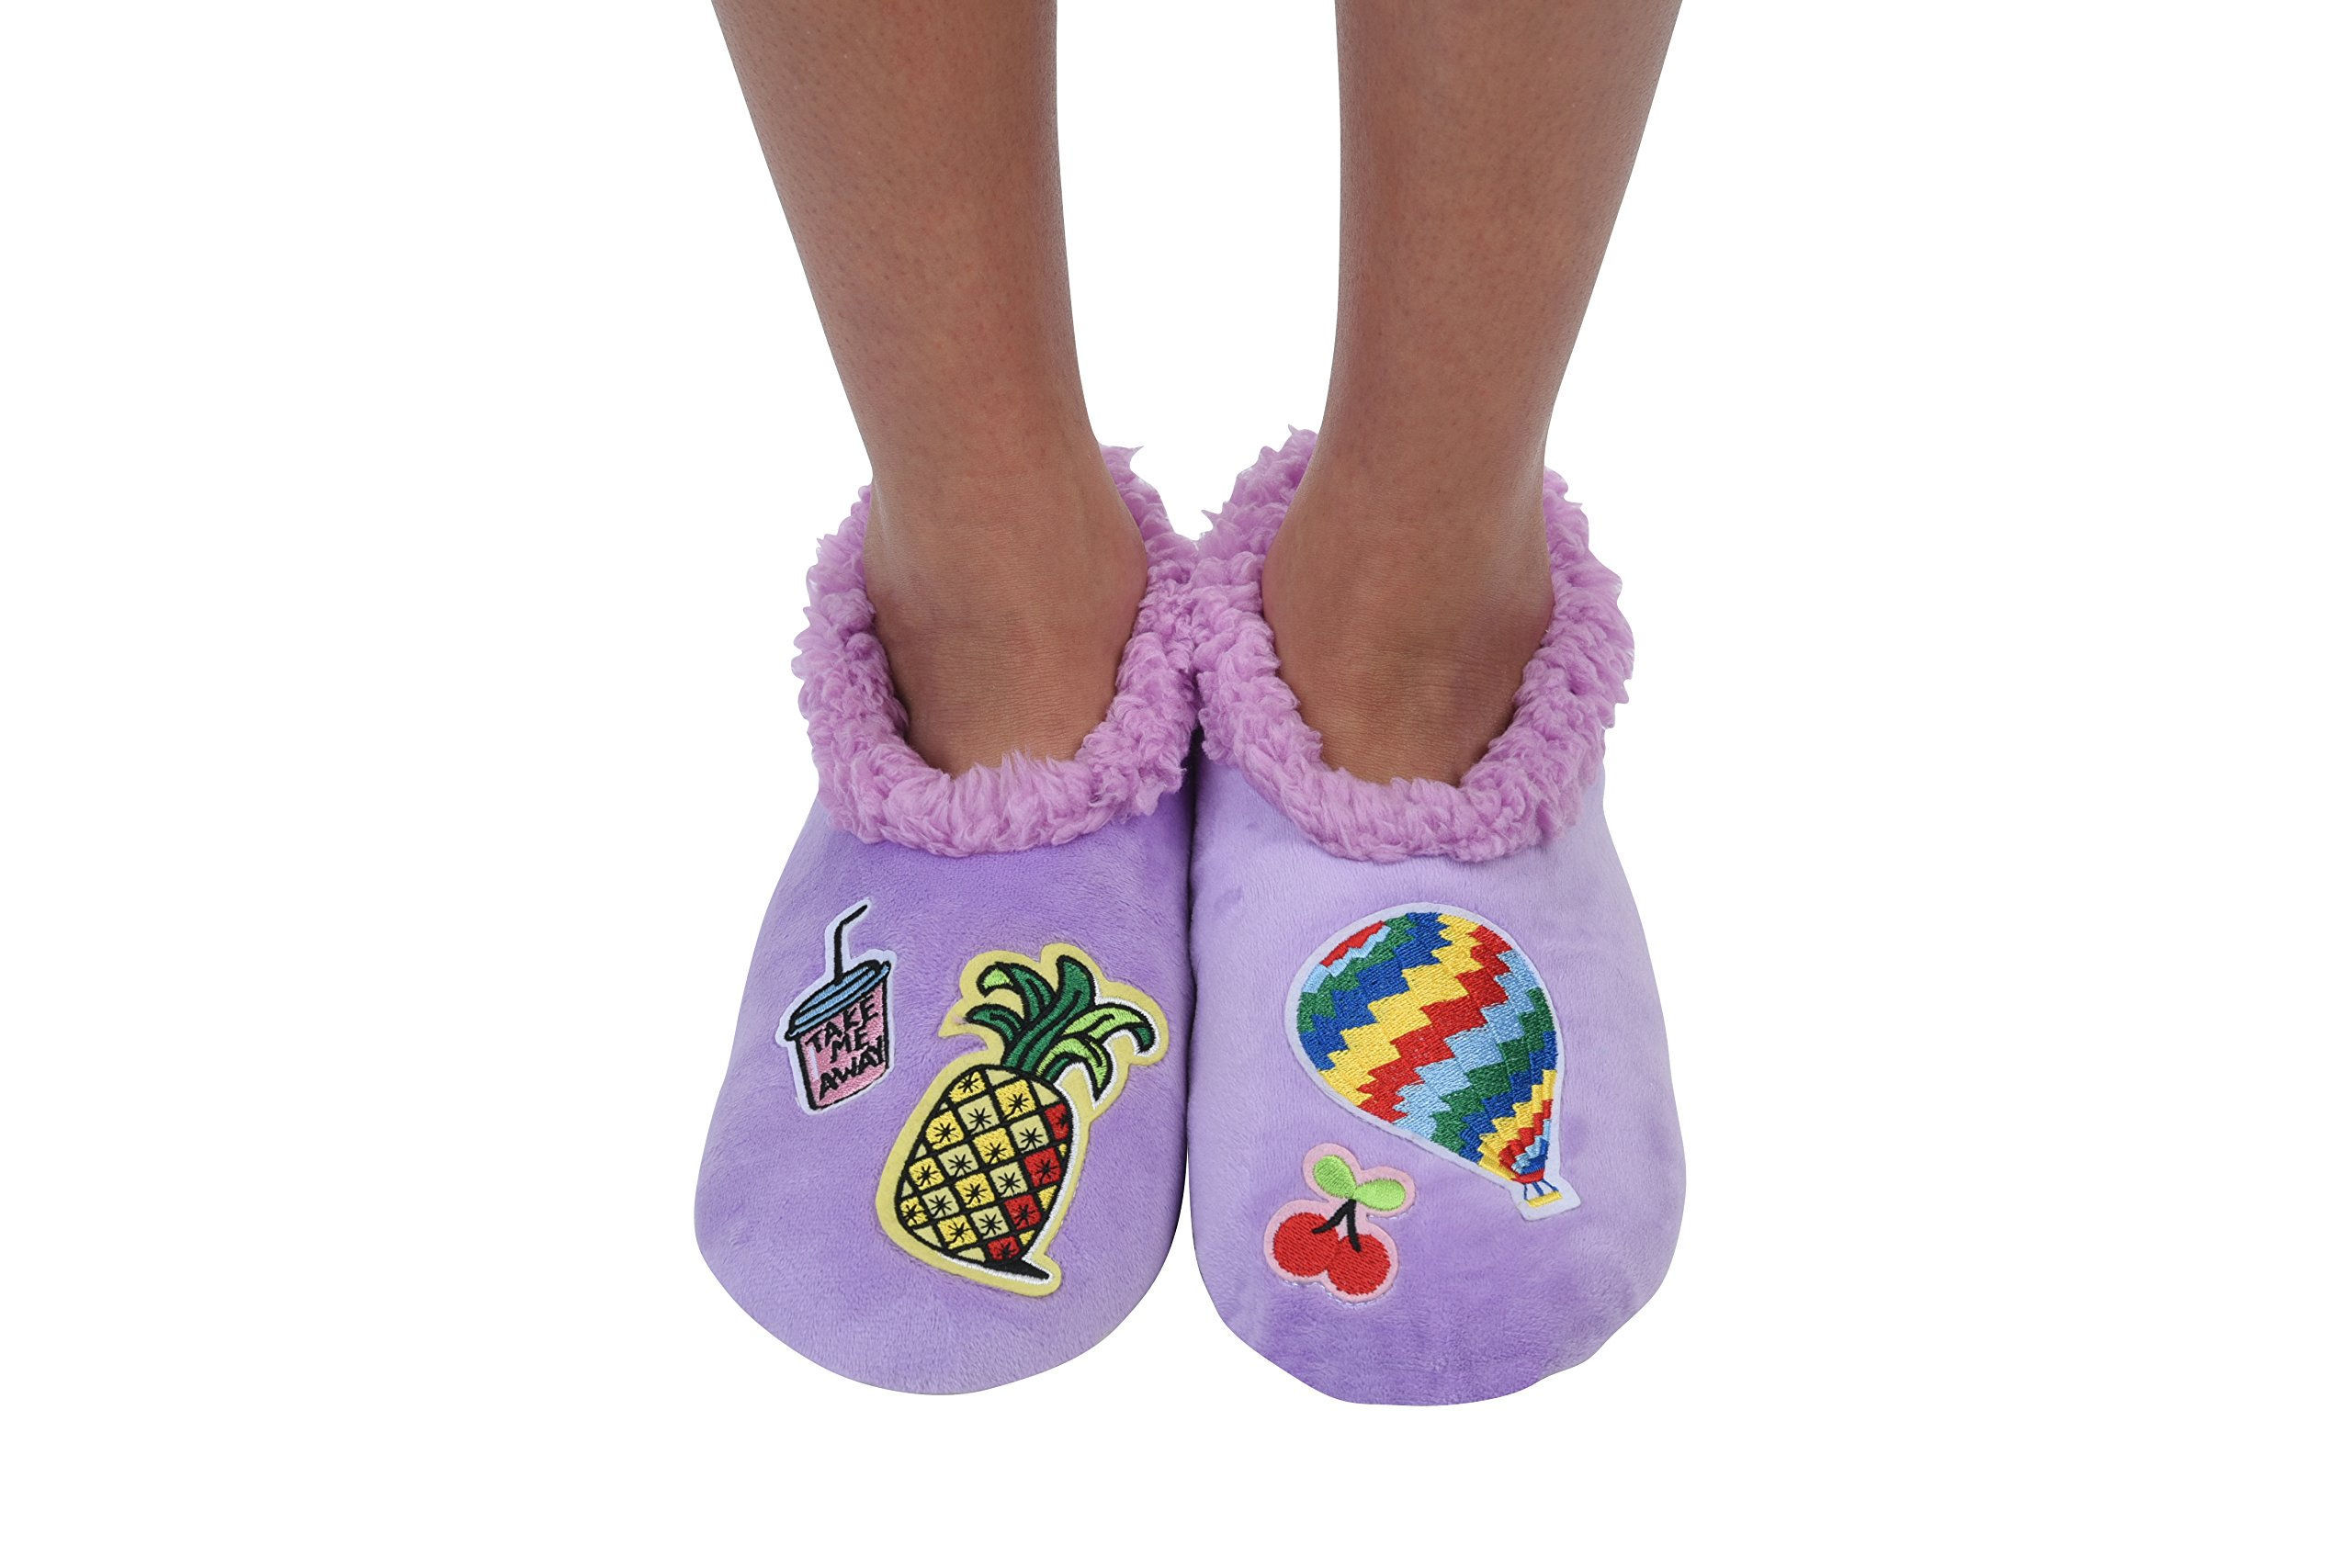 Snoozies Womens Cozy Groovy Applique Patches Non Skid Slipper Socks, Small, Lavender